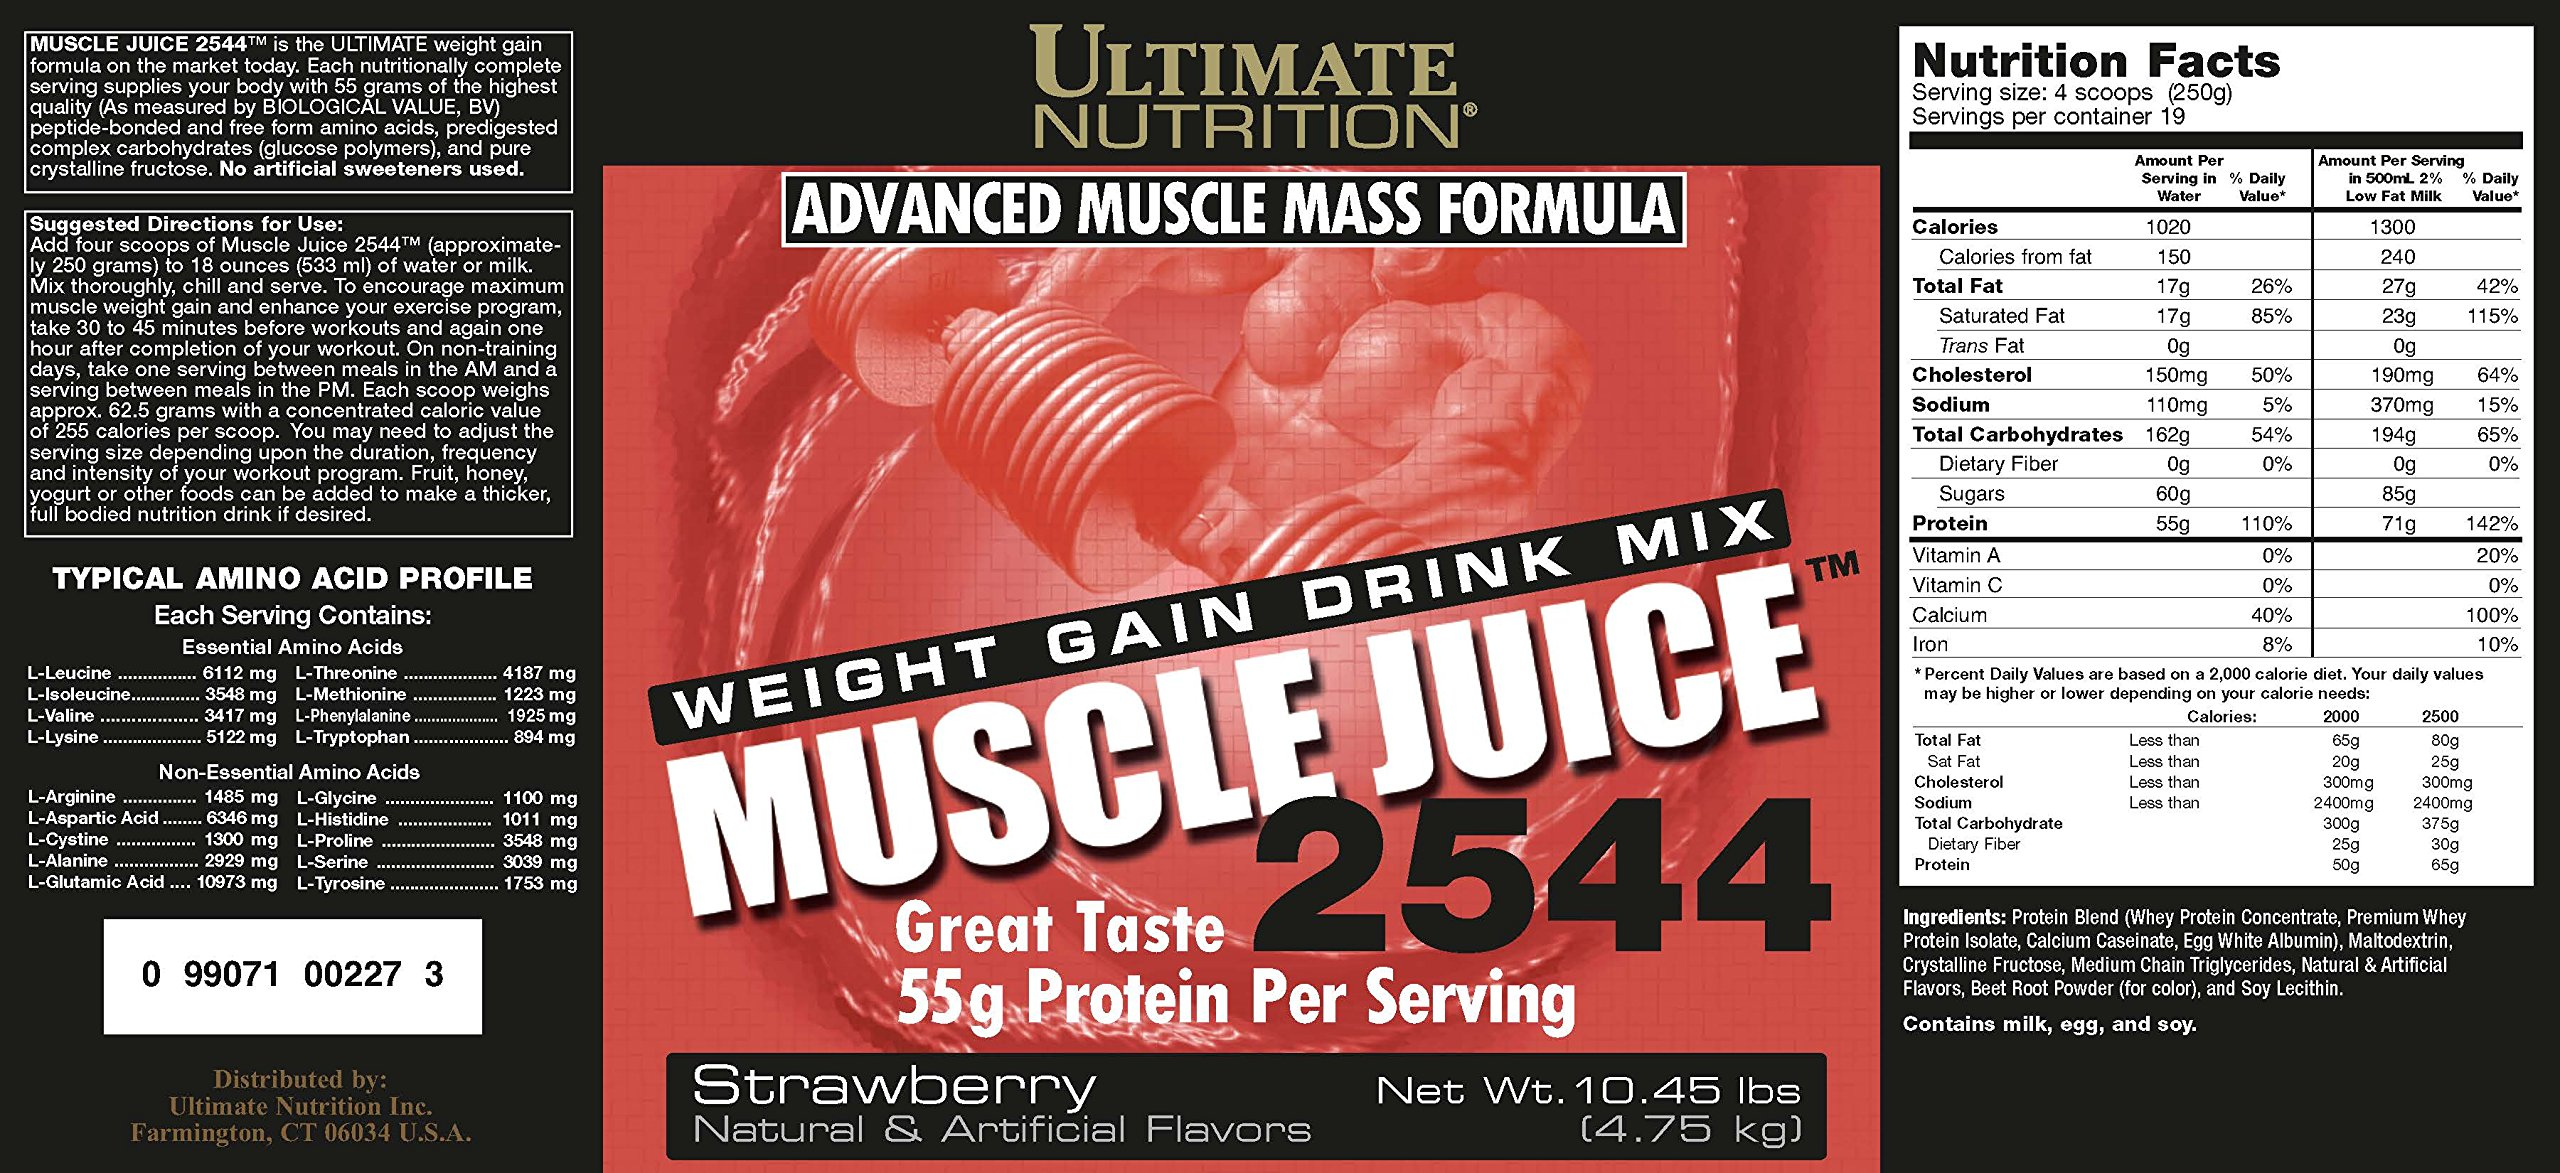 Ultimate Nutrition Muscle Juice 2544 Weight Gain Drink Mix, Strawberry, 167.2 Ounces by Ultimate Nutrition